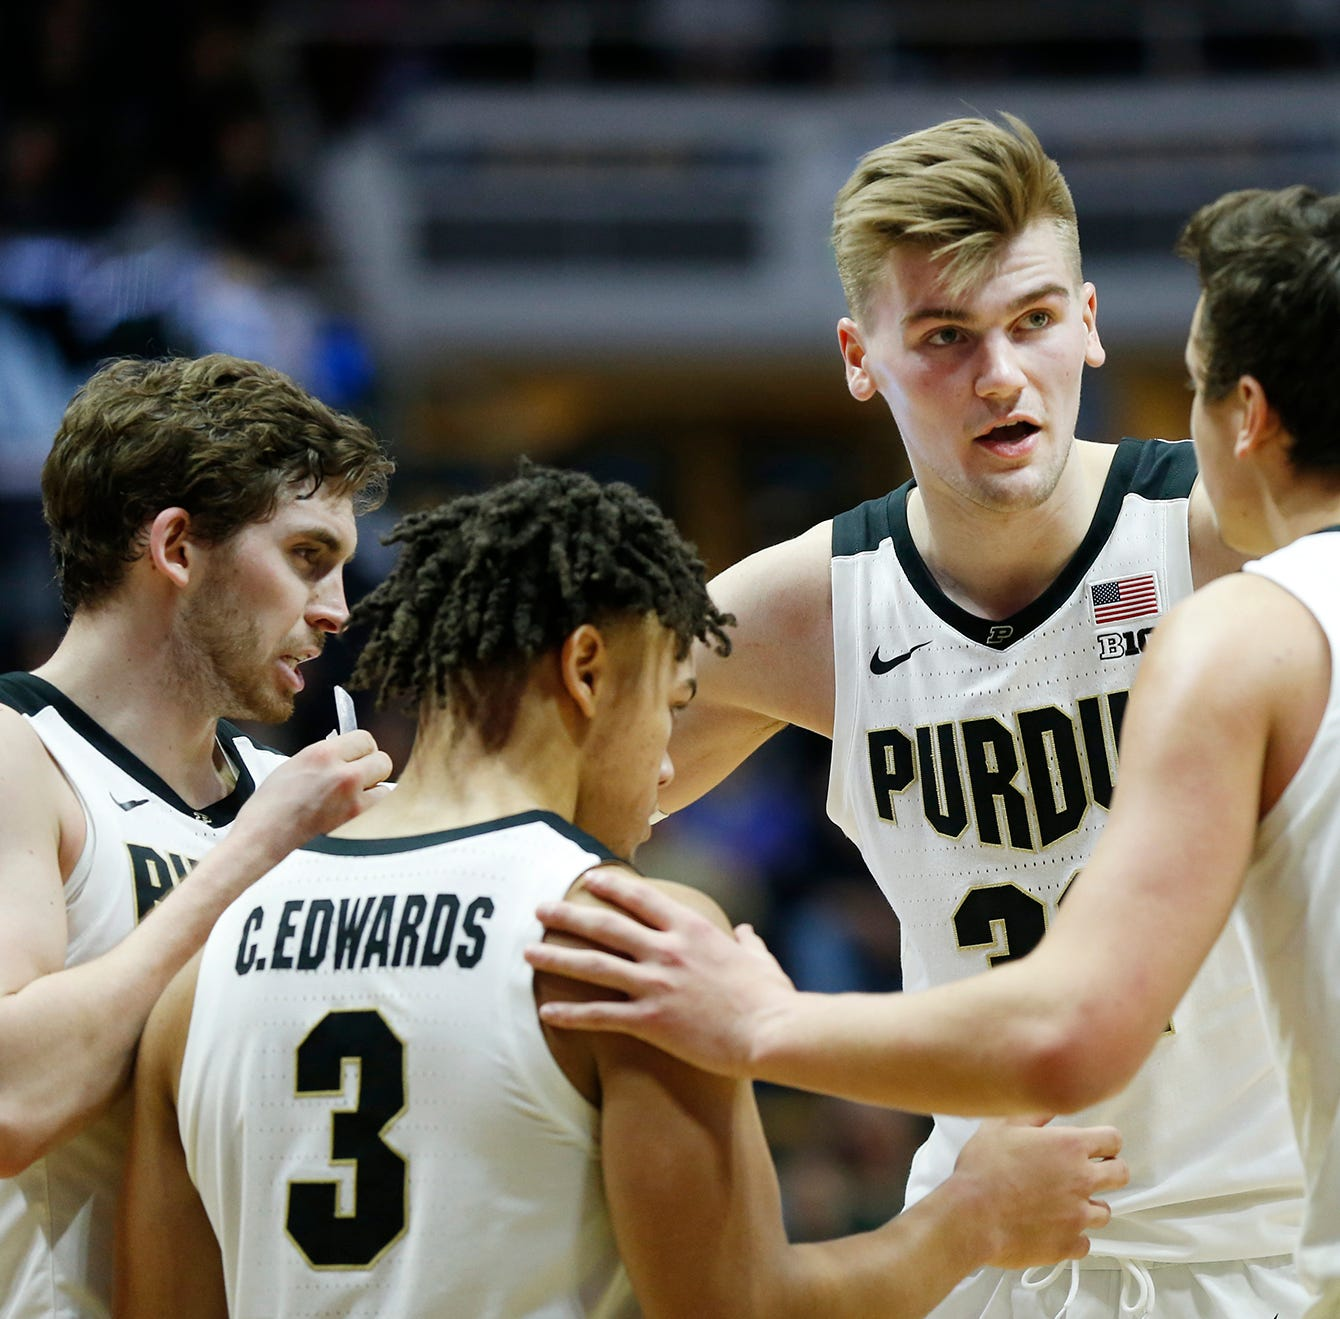 With Old Dominion up first, Purdue basketball takes next shot at NCAA Tournament run